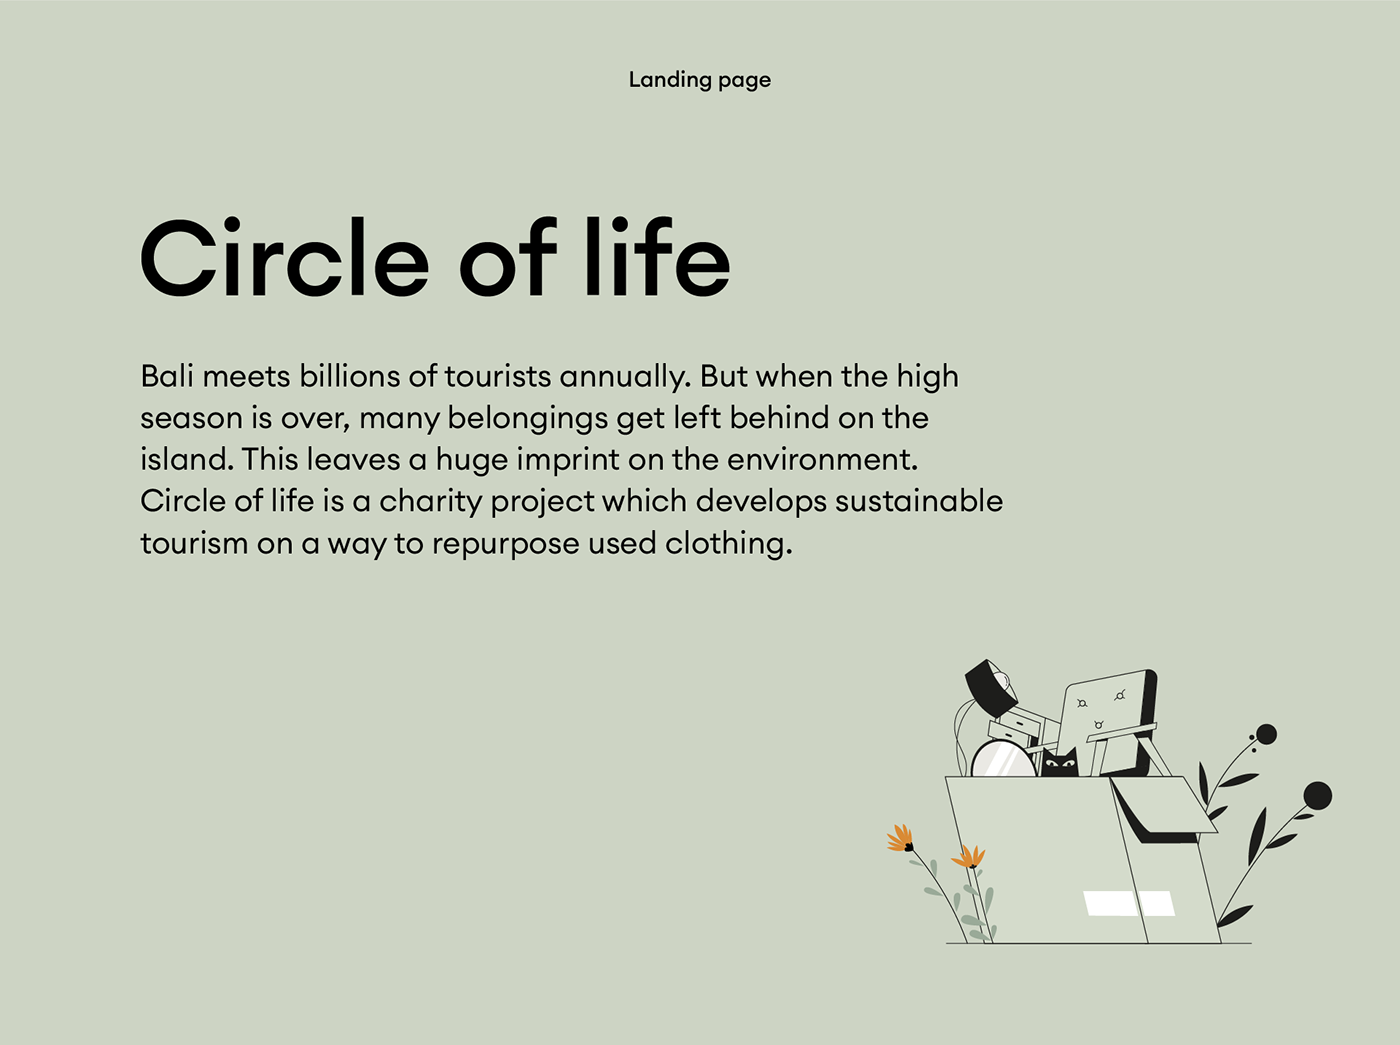 Landing page for Circle of life project